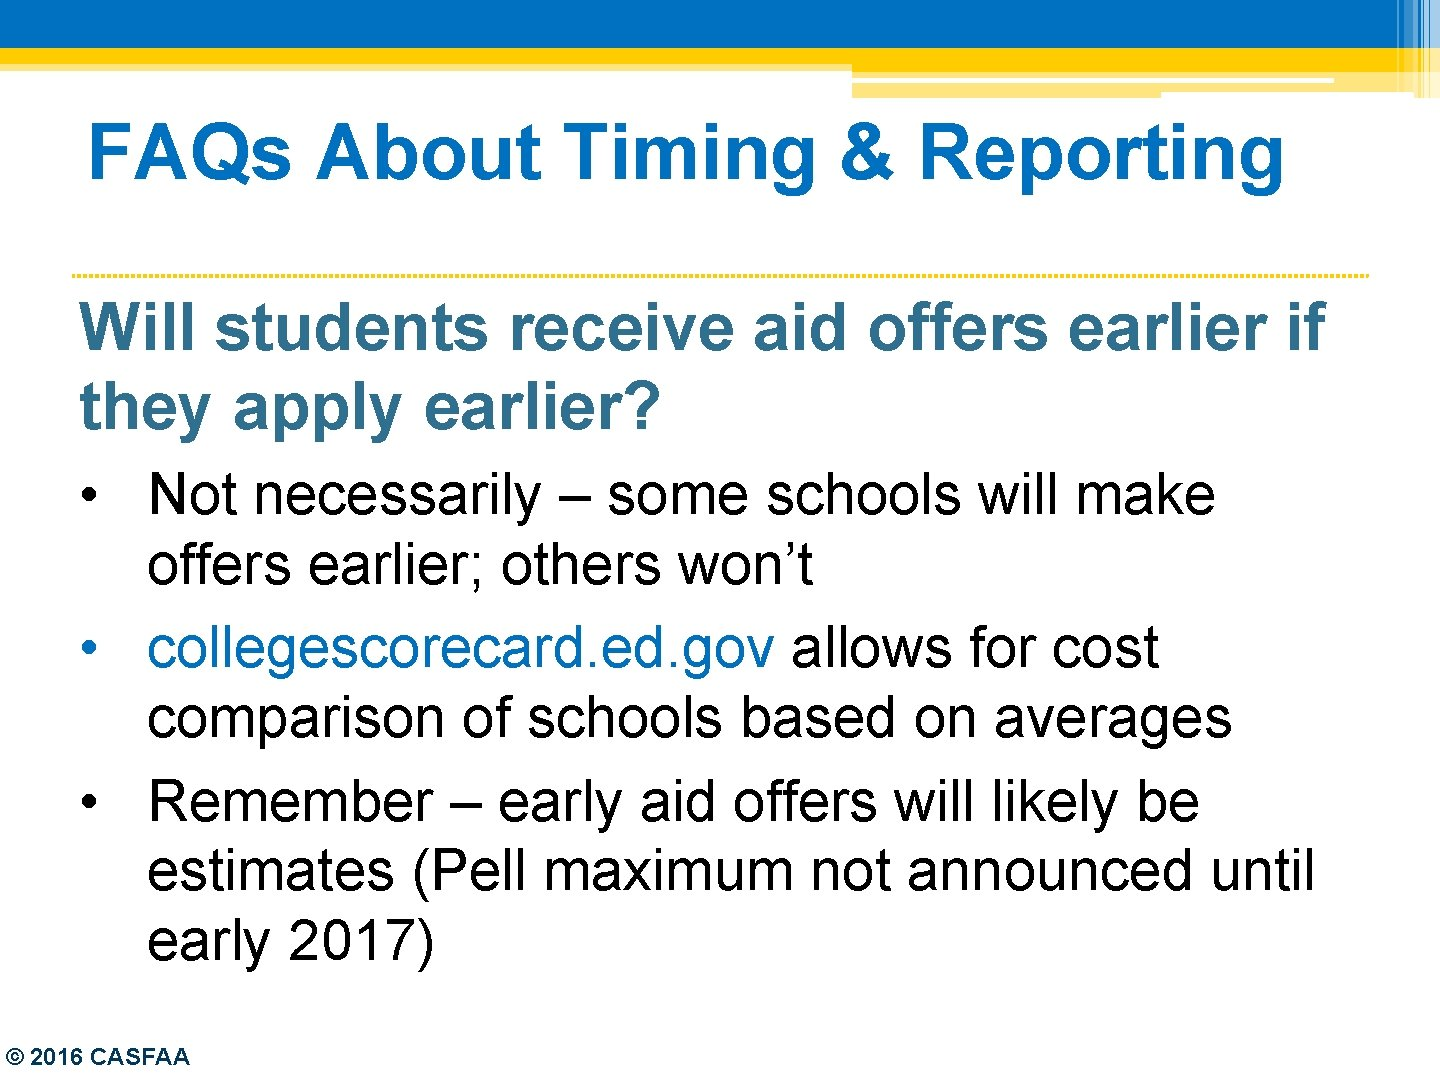 FAQs About Timing & Reporting Will students receive aid offers earlier if they apply